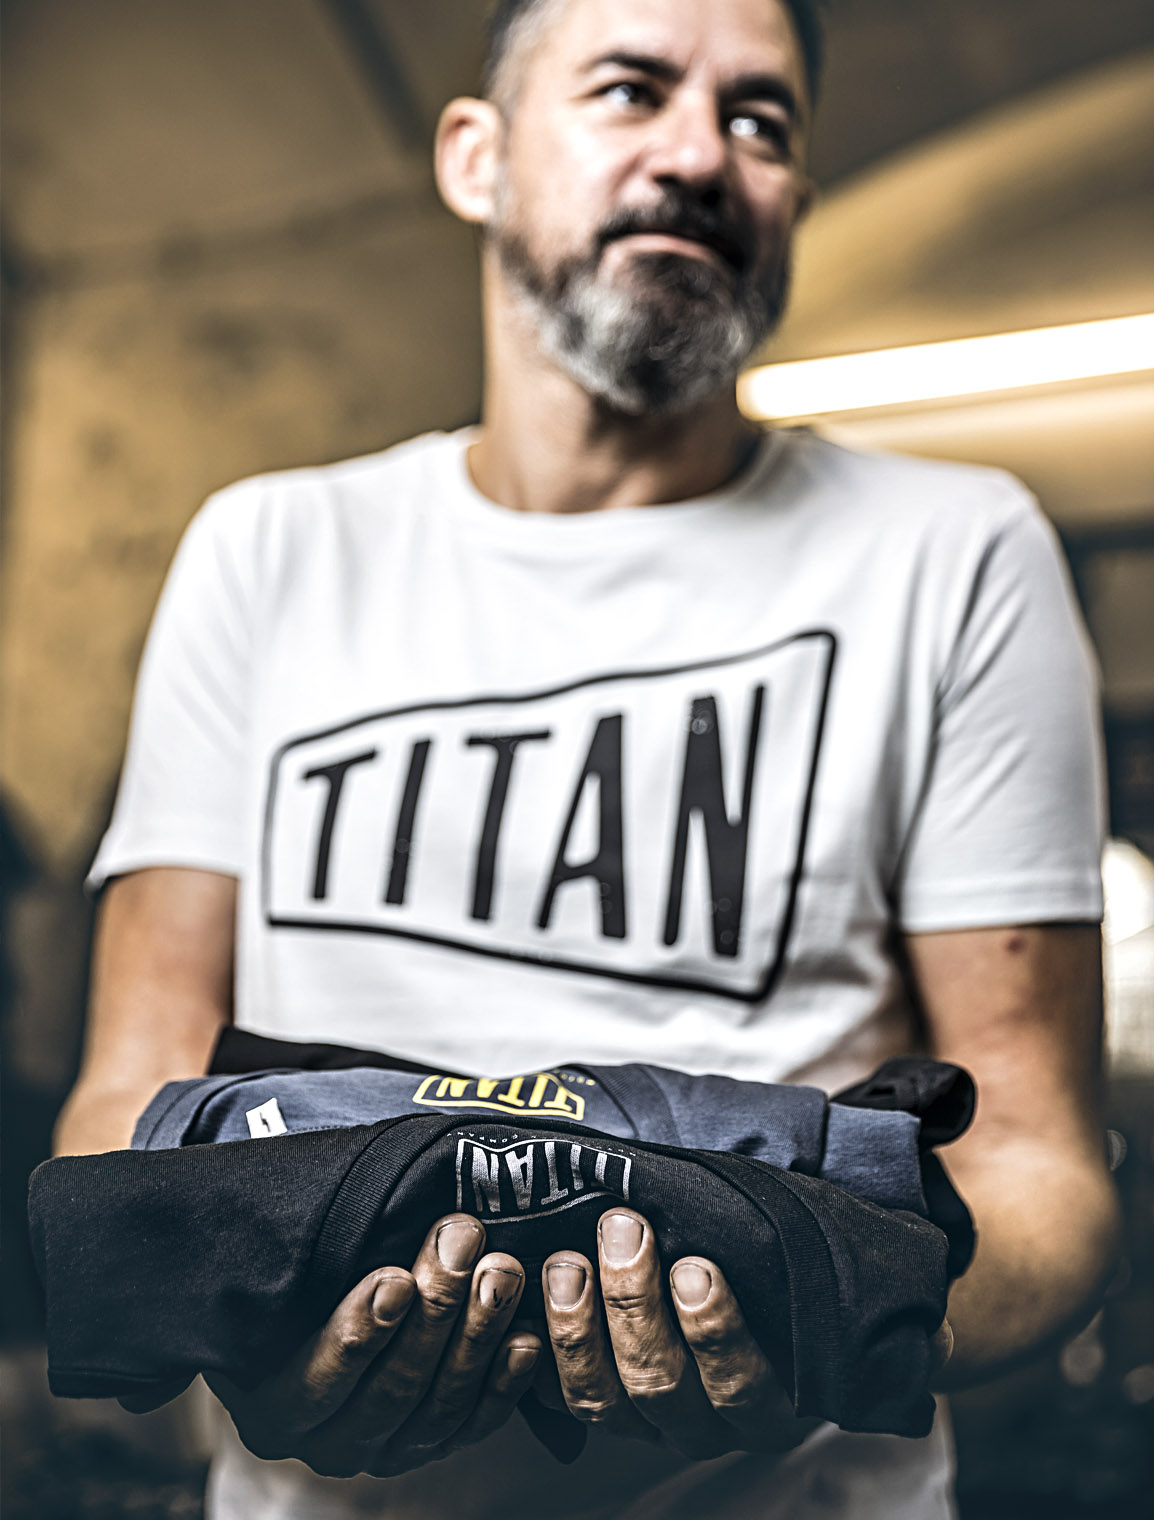 titan_shirt_motorcycles_custom